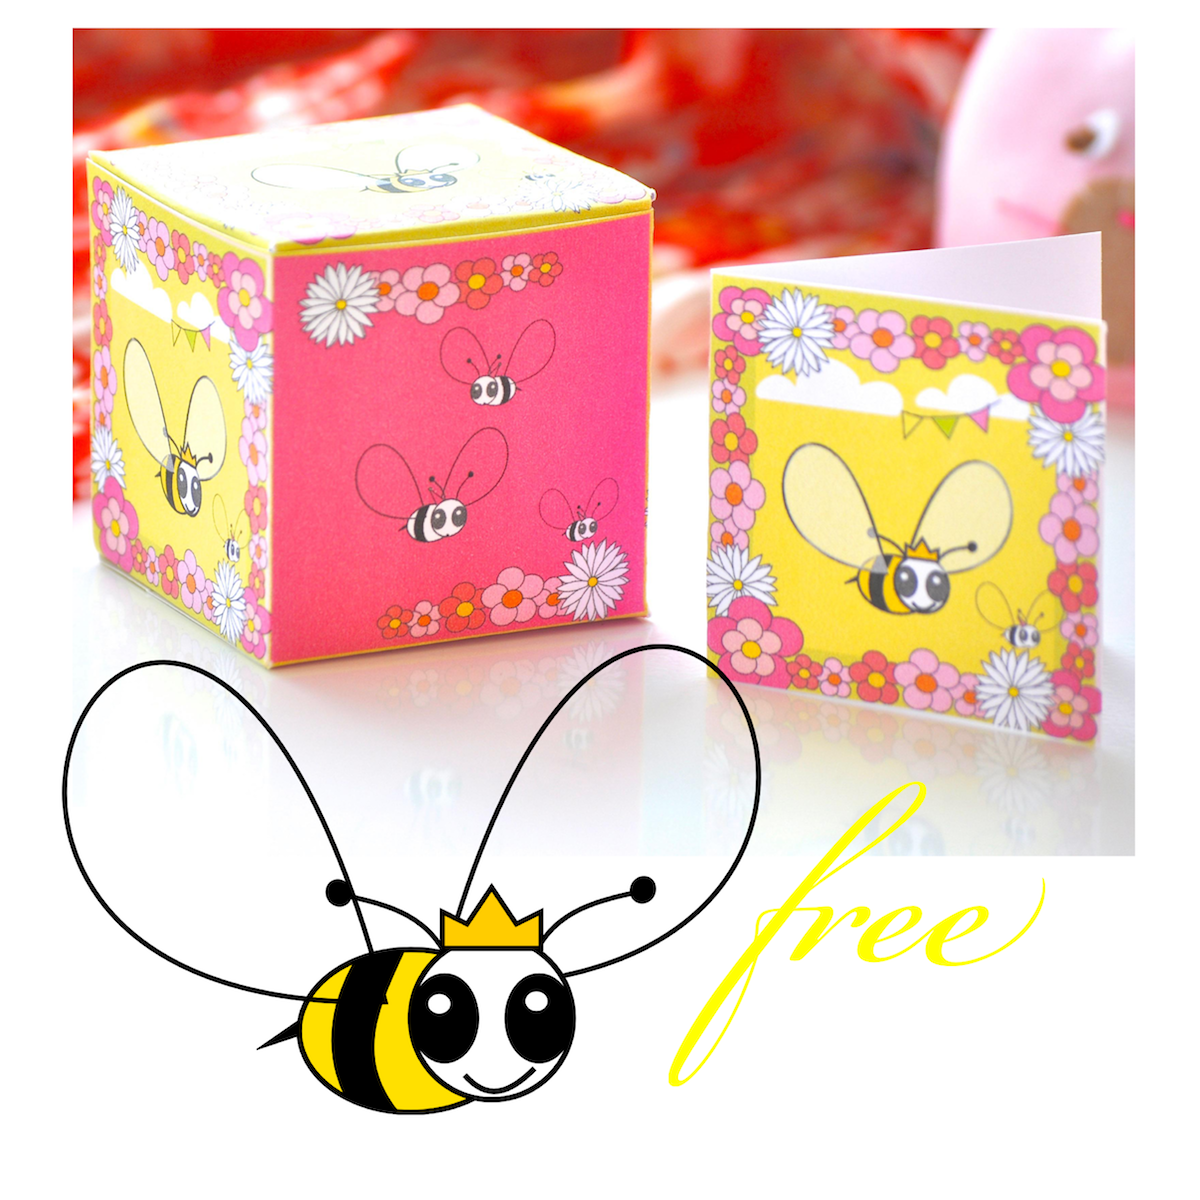 image relating to Free Printable Bee Template referred to as Totally free electronic bee sbooking paper + box template